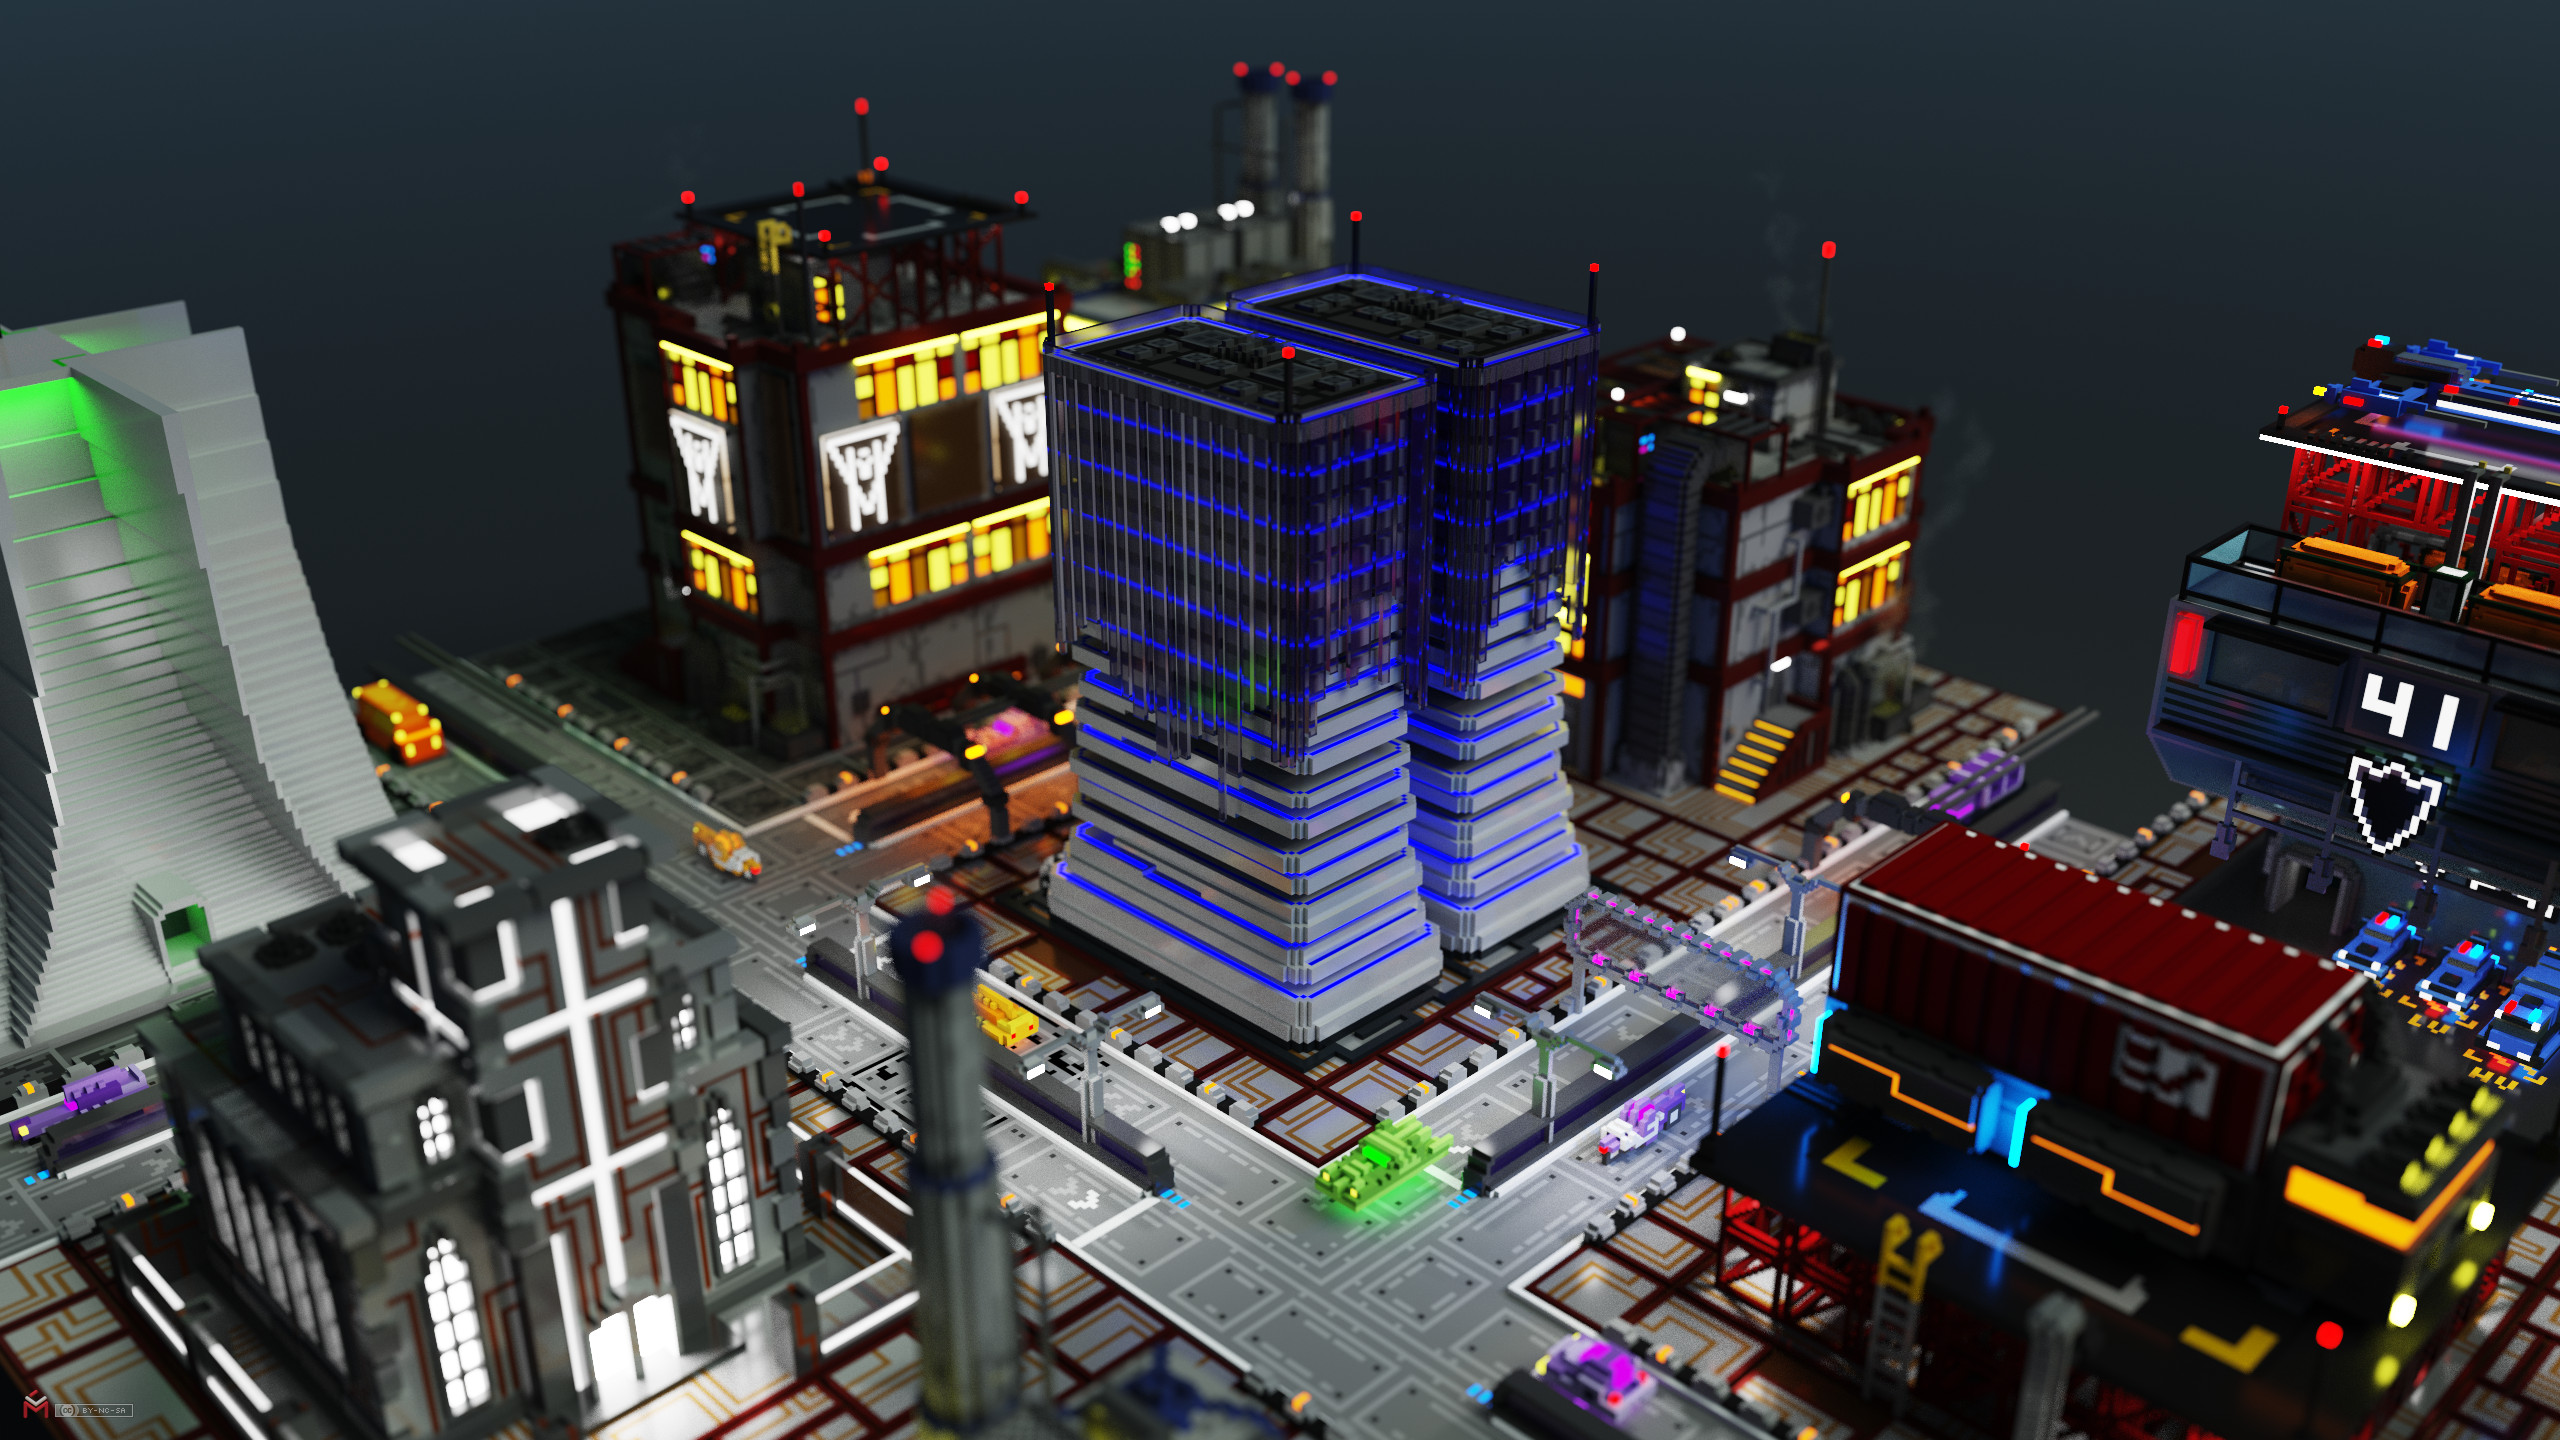 """MCP Relay"" among additional models by Muerto_ni, StarVox and Starvick, licensed under CC BY-NC-SA 4.0